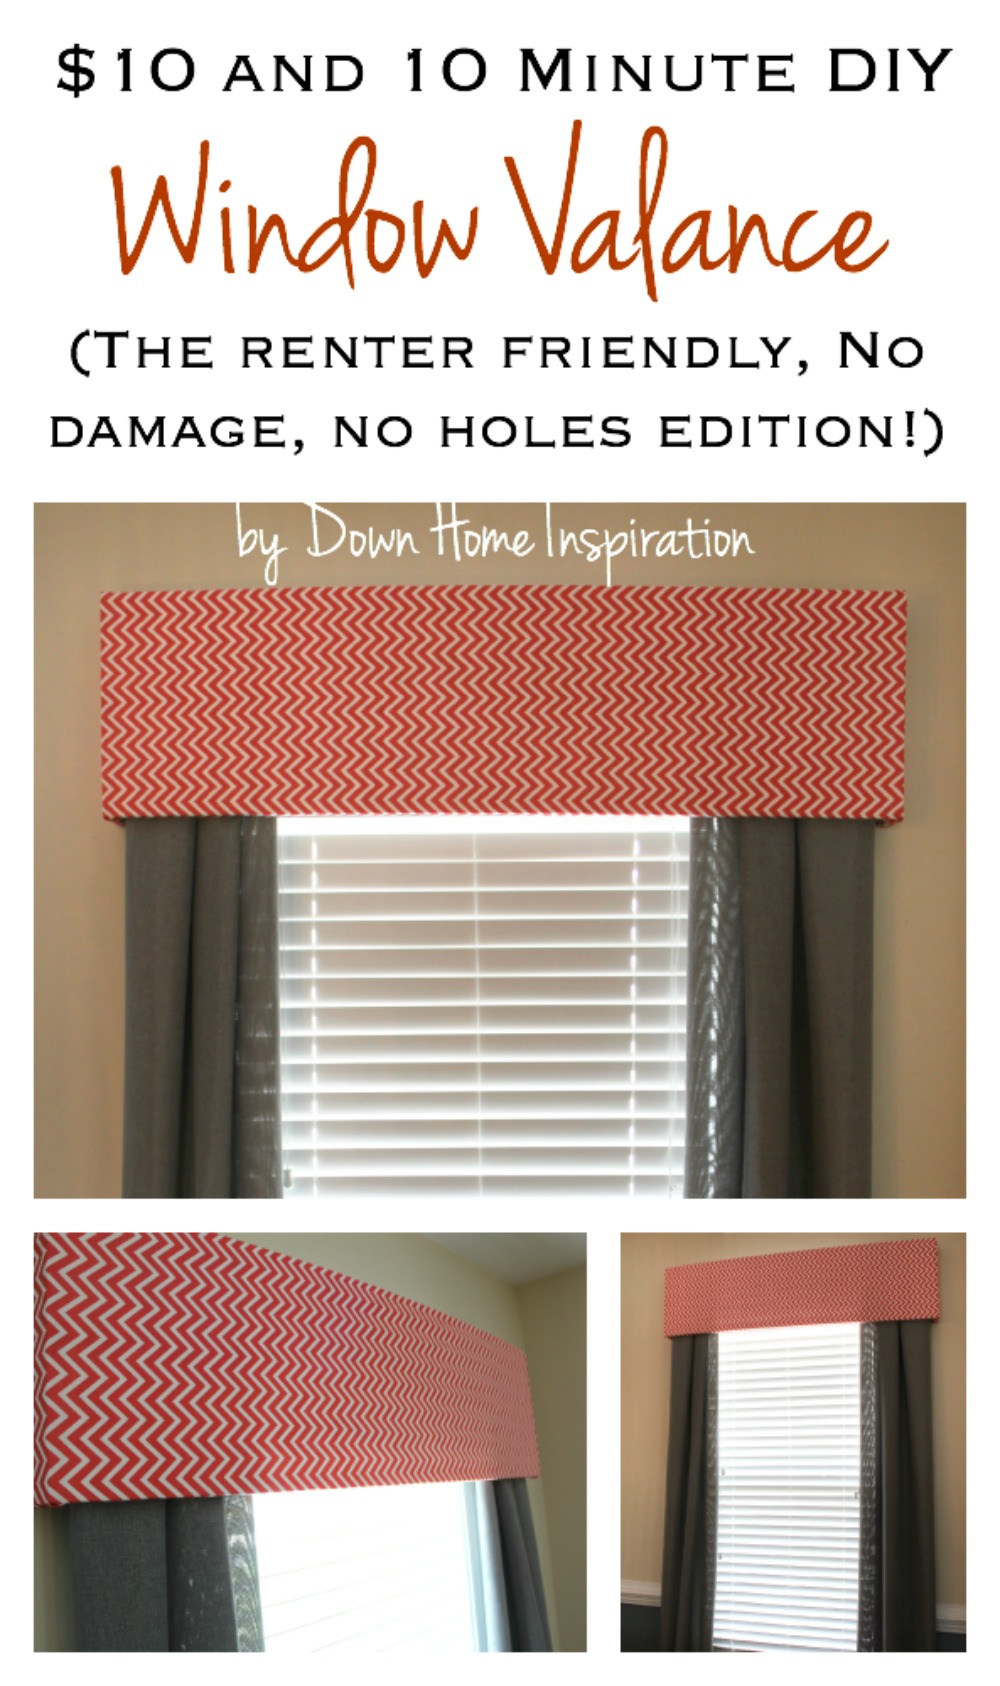 Renter Friendly No Holes No Damage 10 And 10 Minute Diy Window Valance Down Home Inspiration